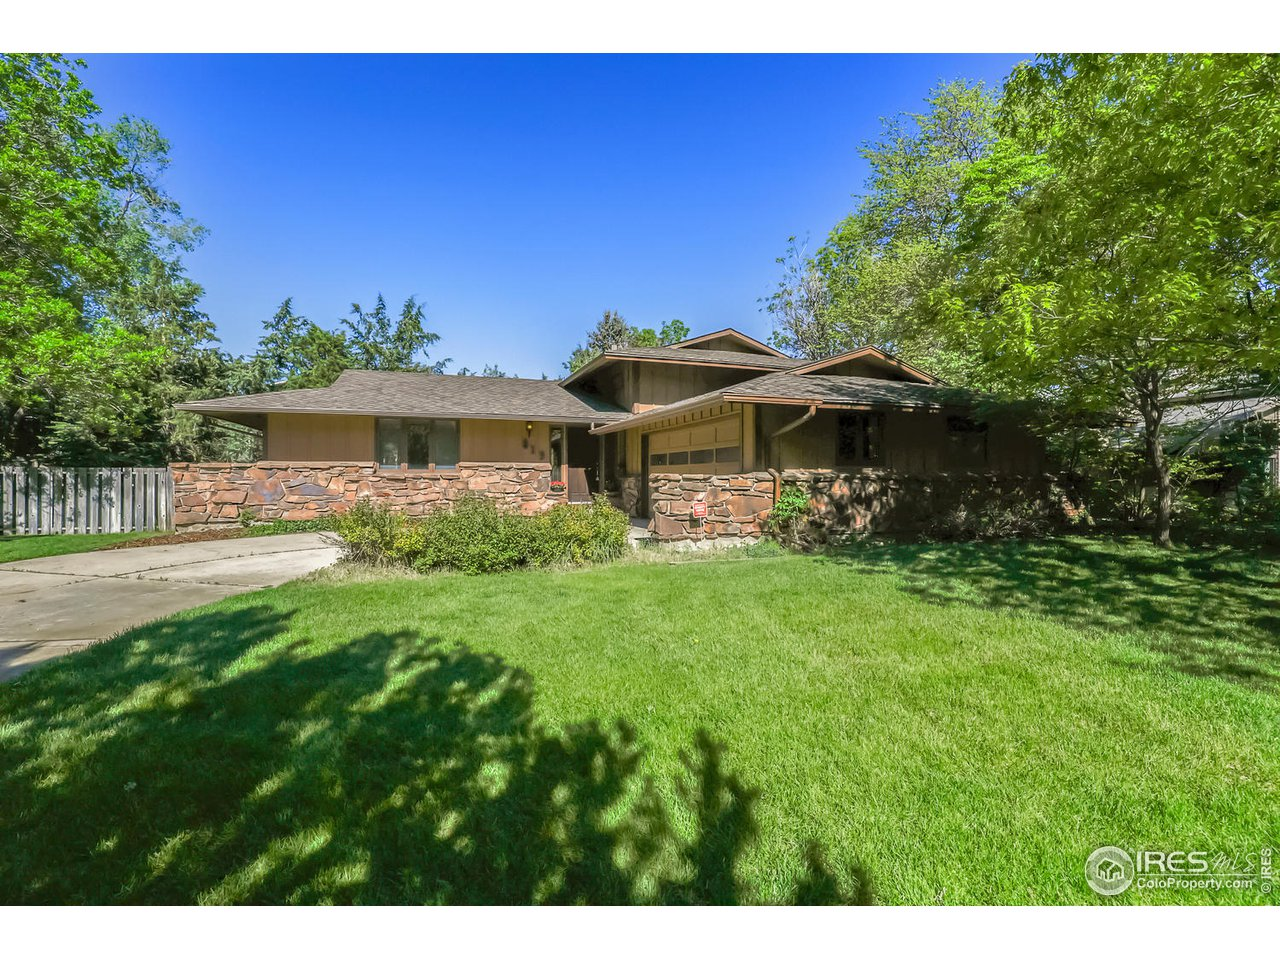 813 Sycamore Ave, Boulder CO 80303